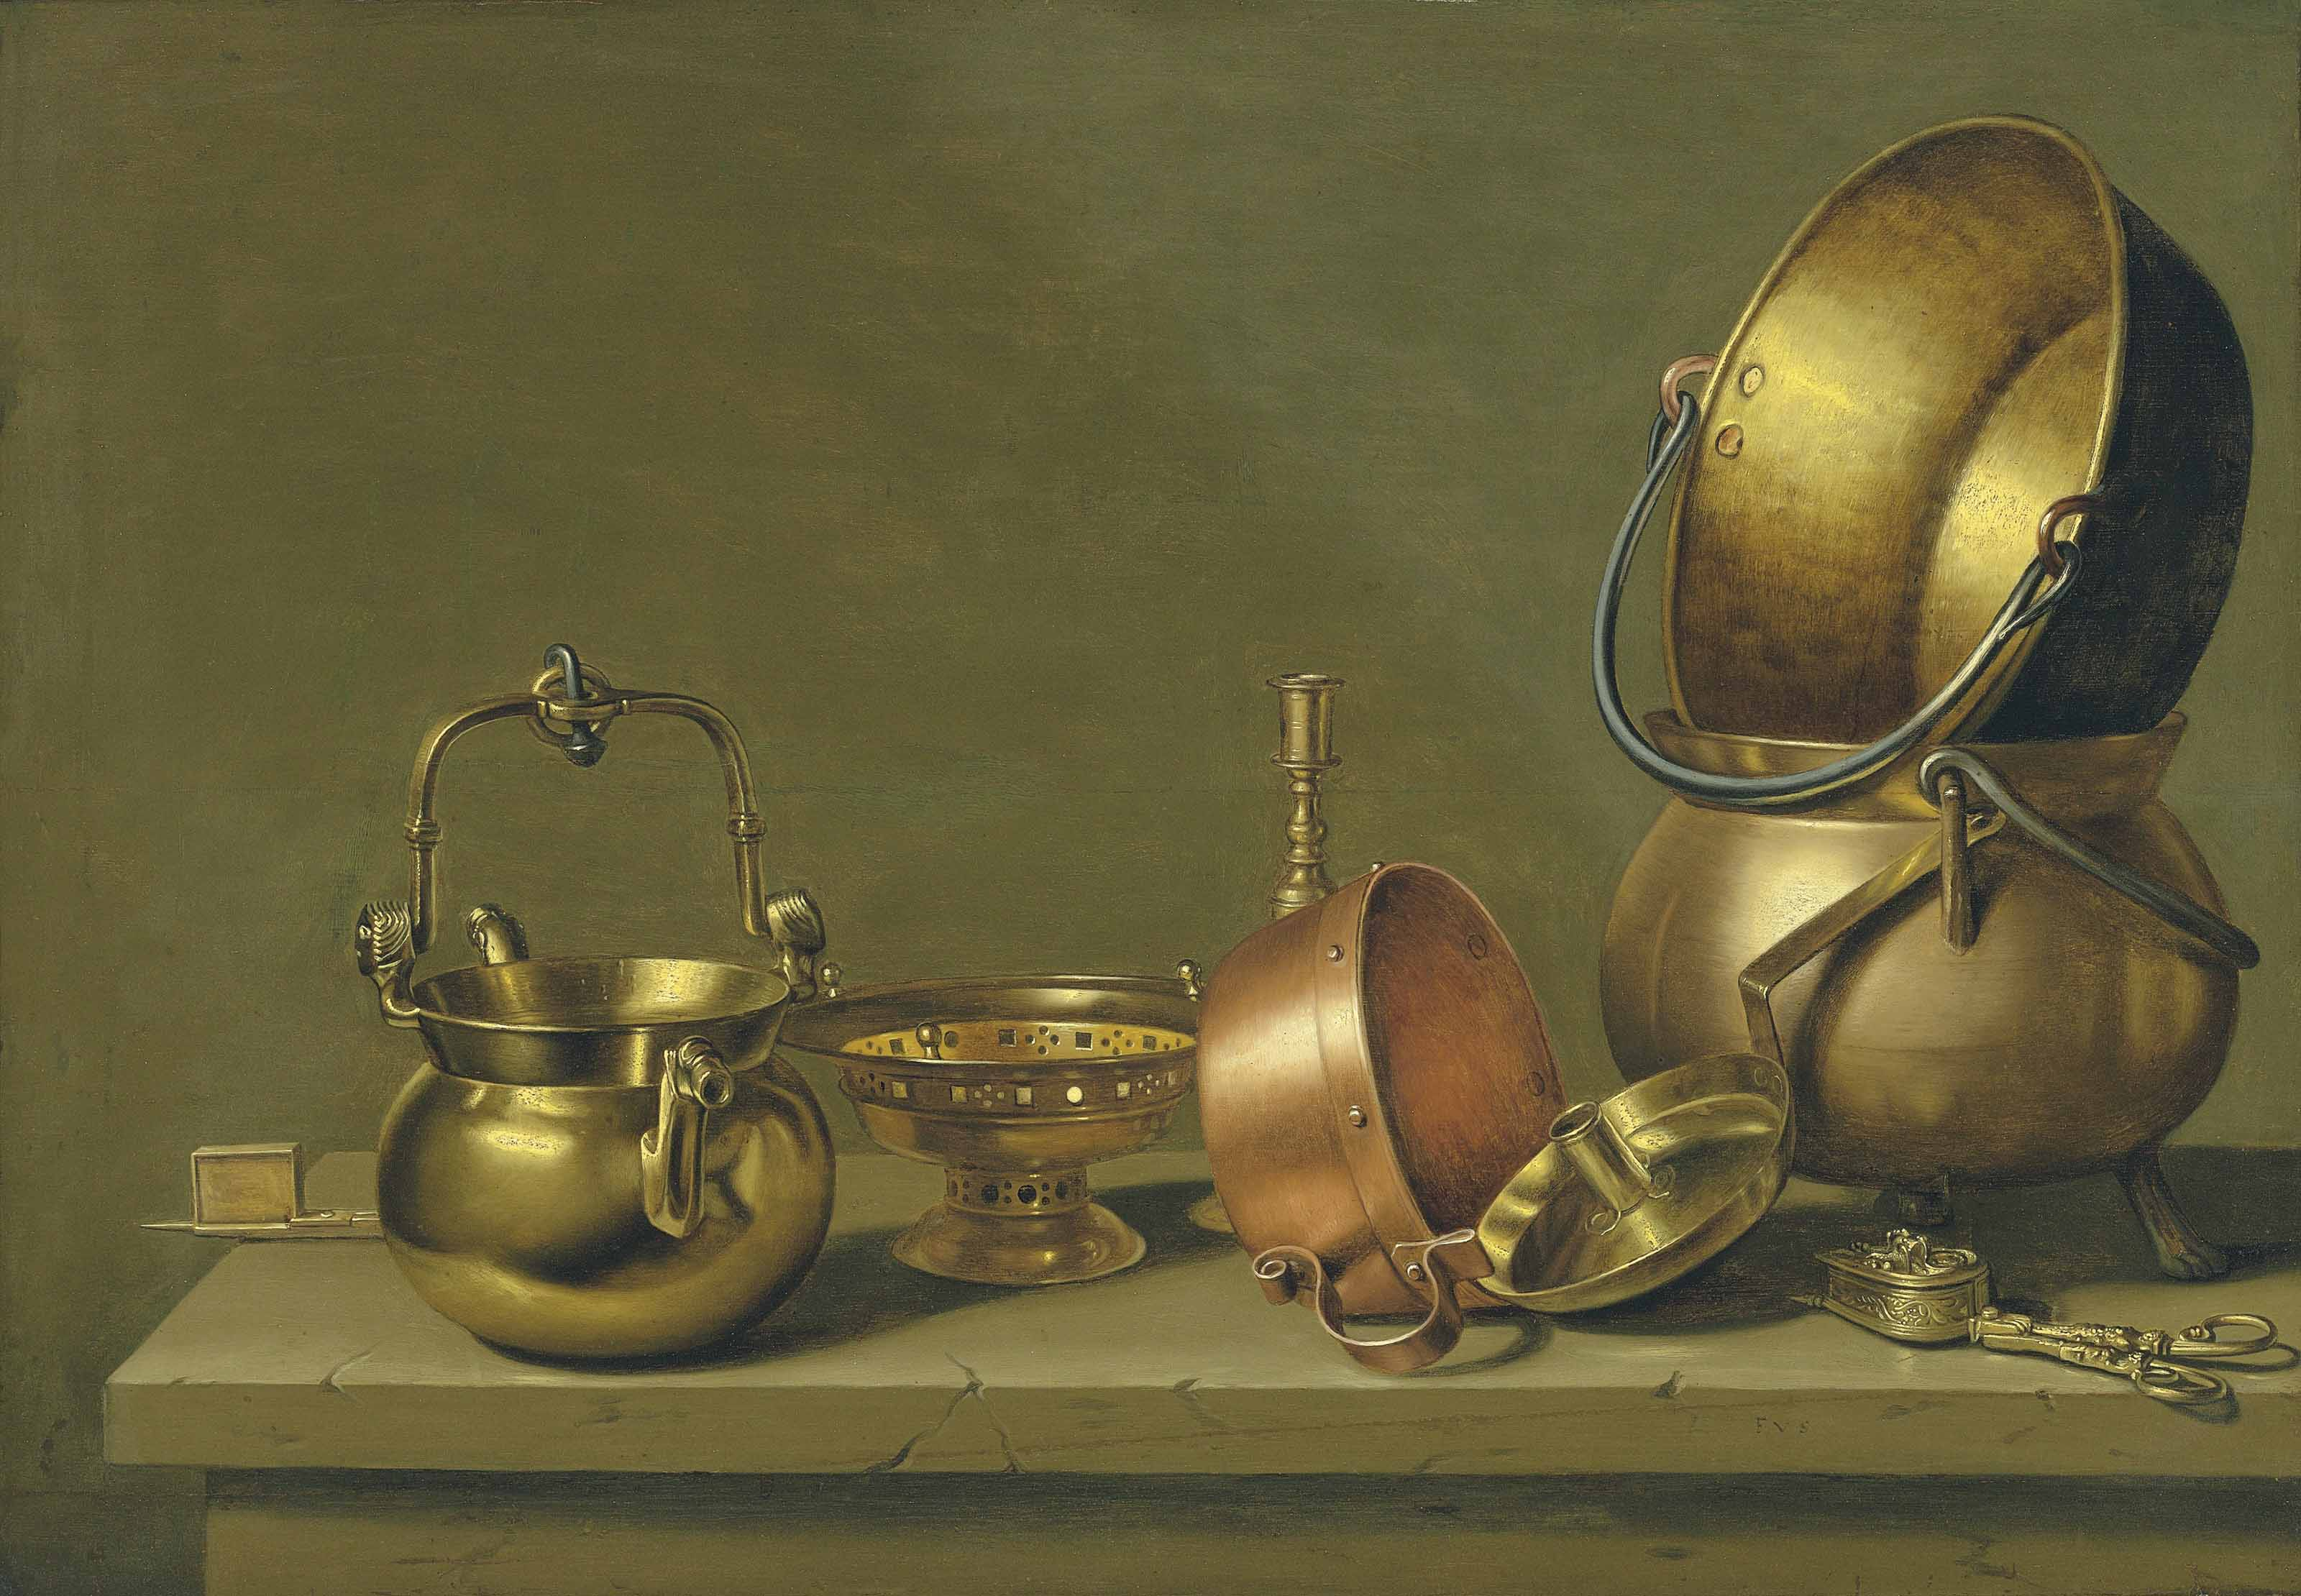 Copper and brass pans with other utensils on a ledge